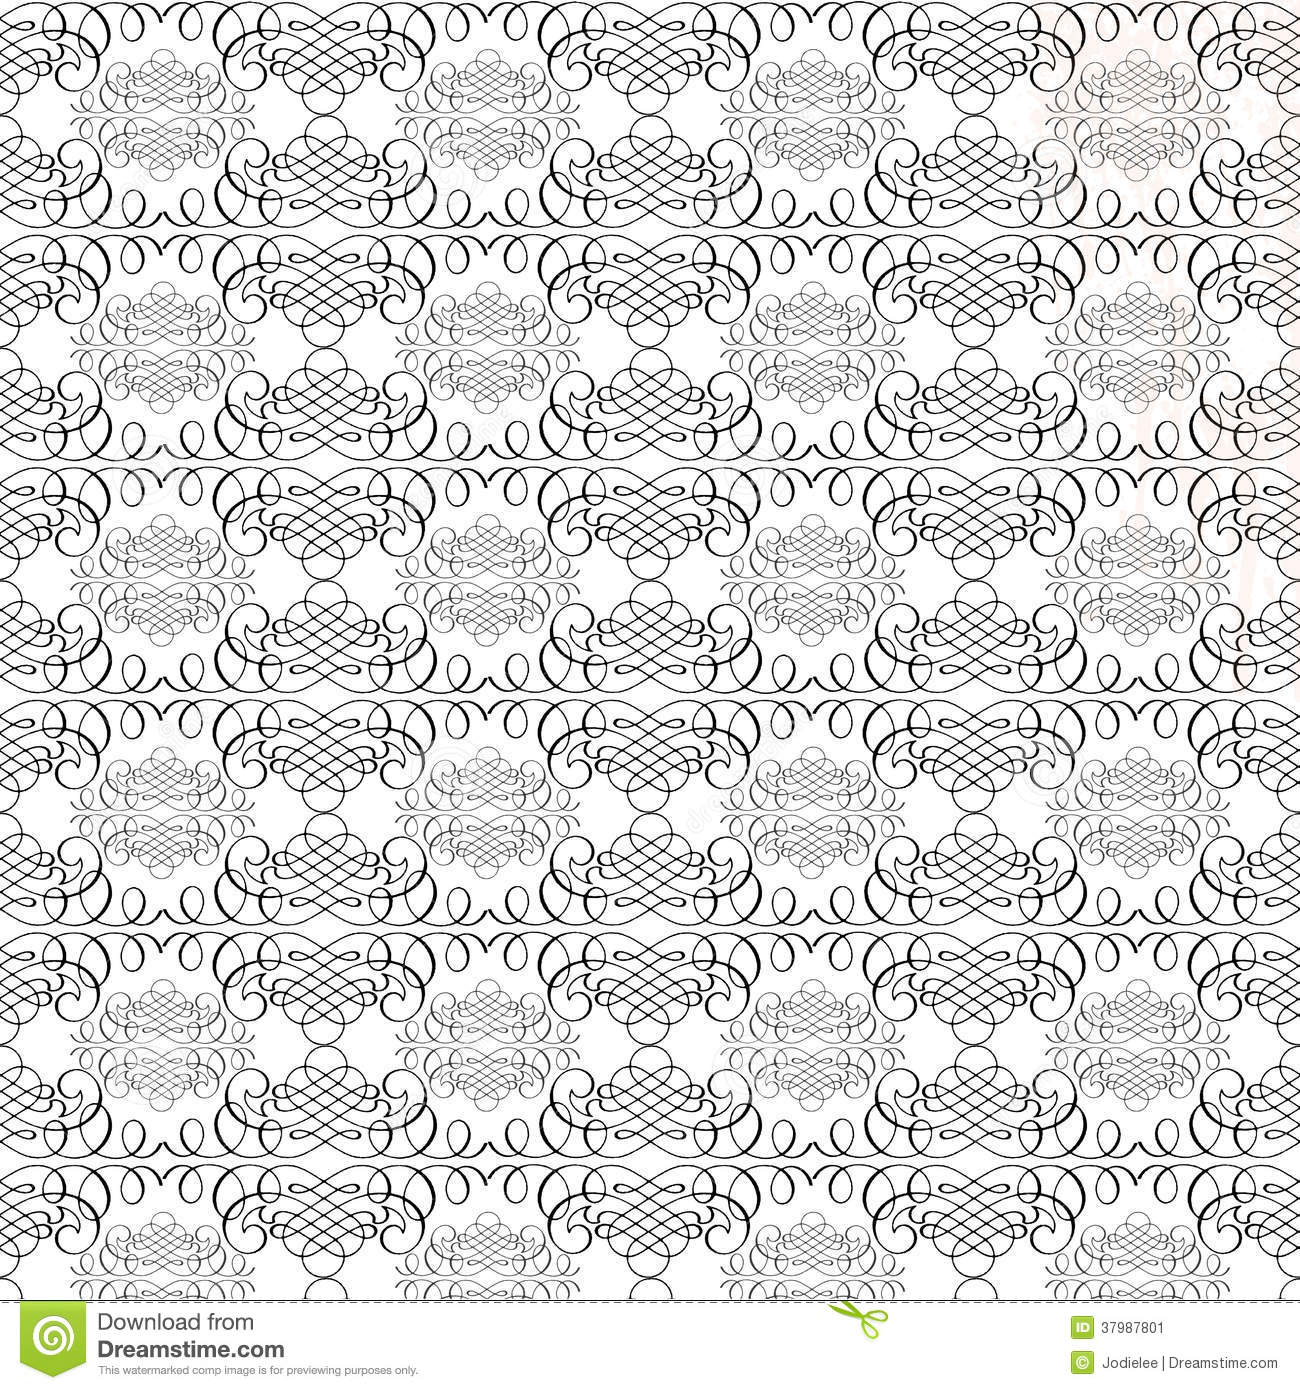 Download Black And White Vintage Calligraphy Swirl Repeat Pattern Stock Image - Image of white, swoosh: 37987801